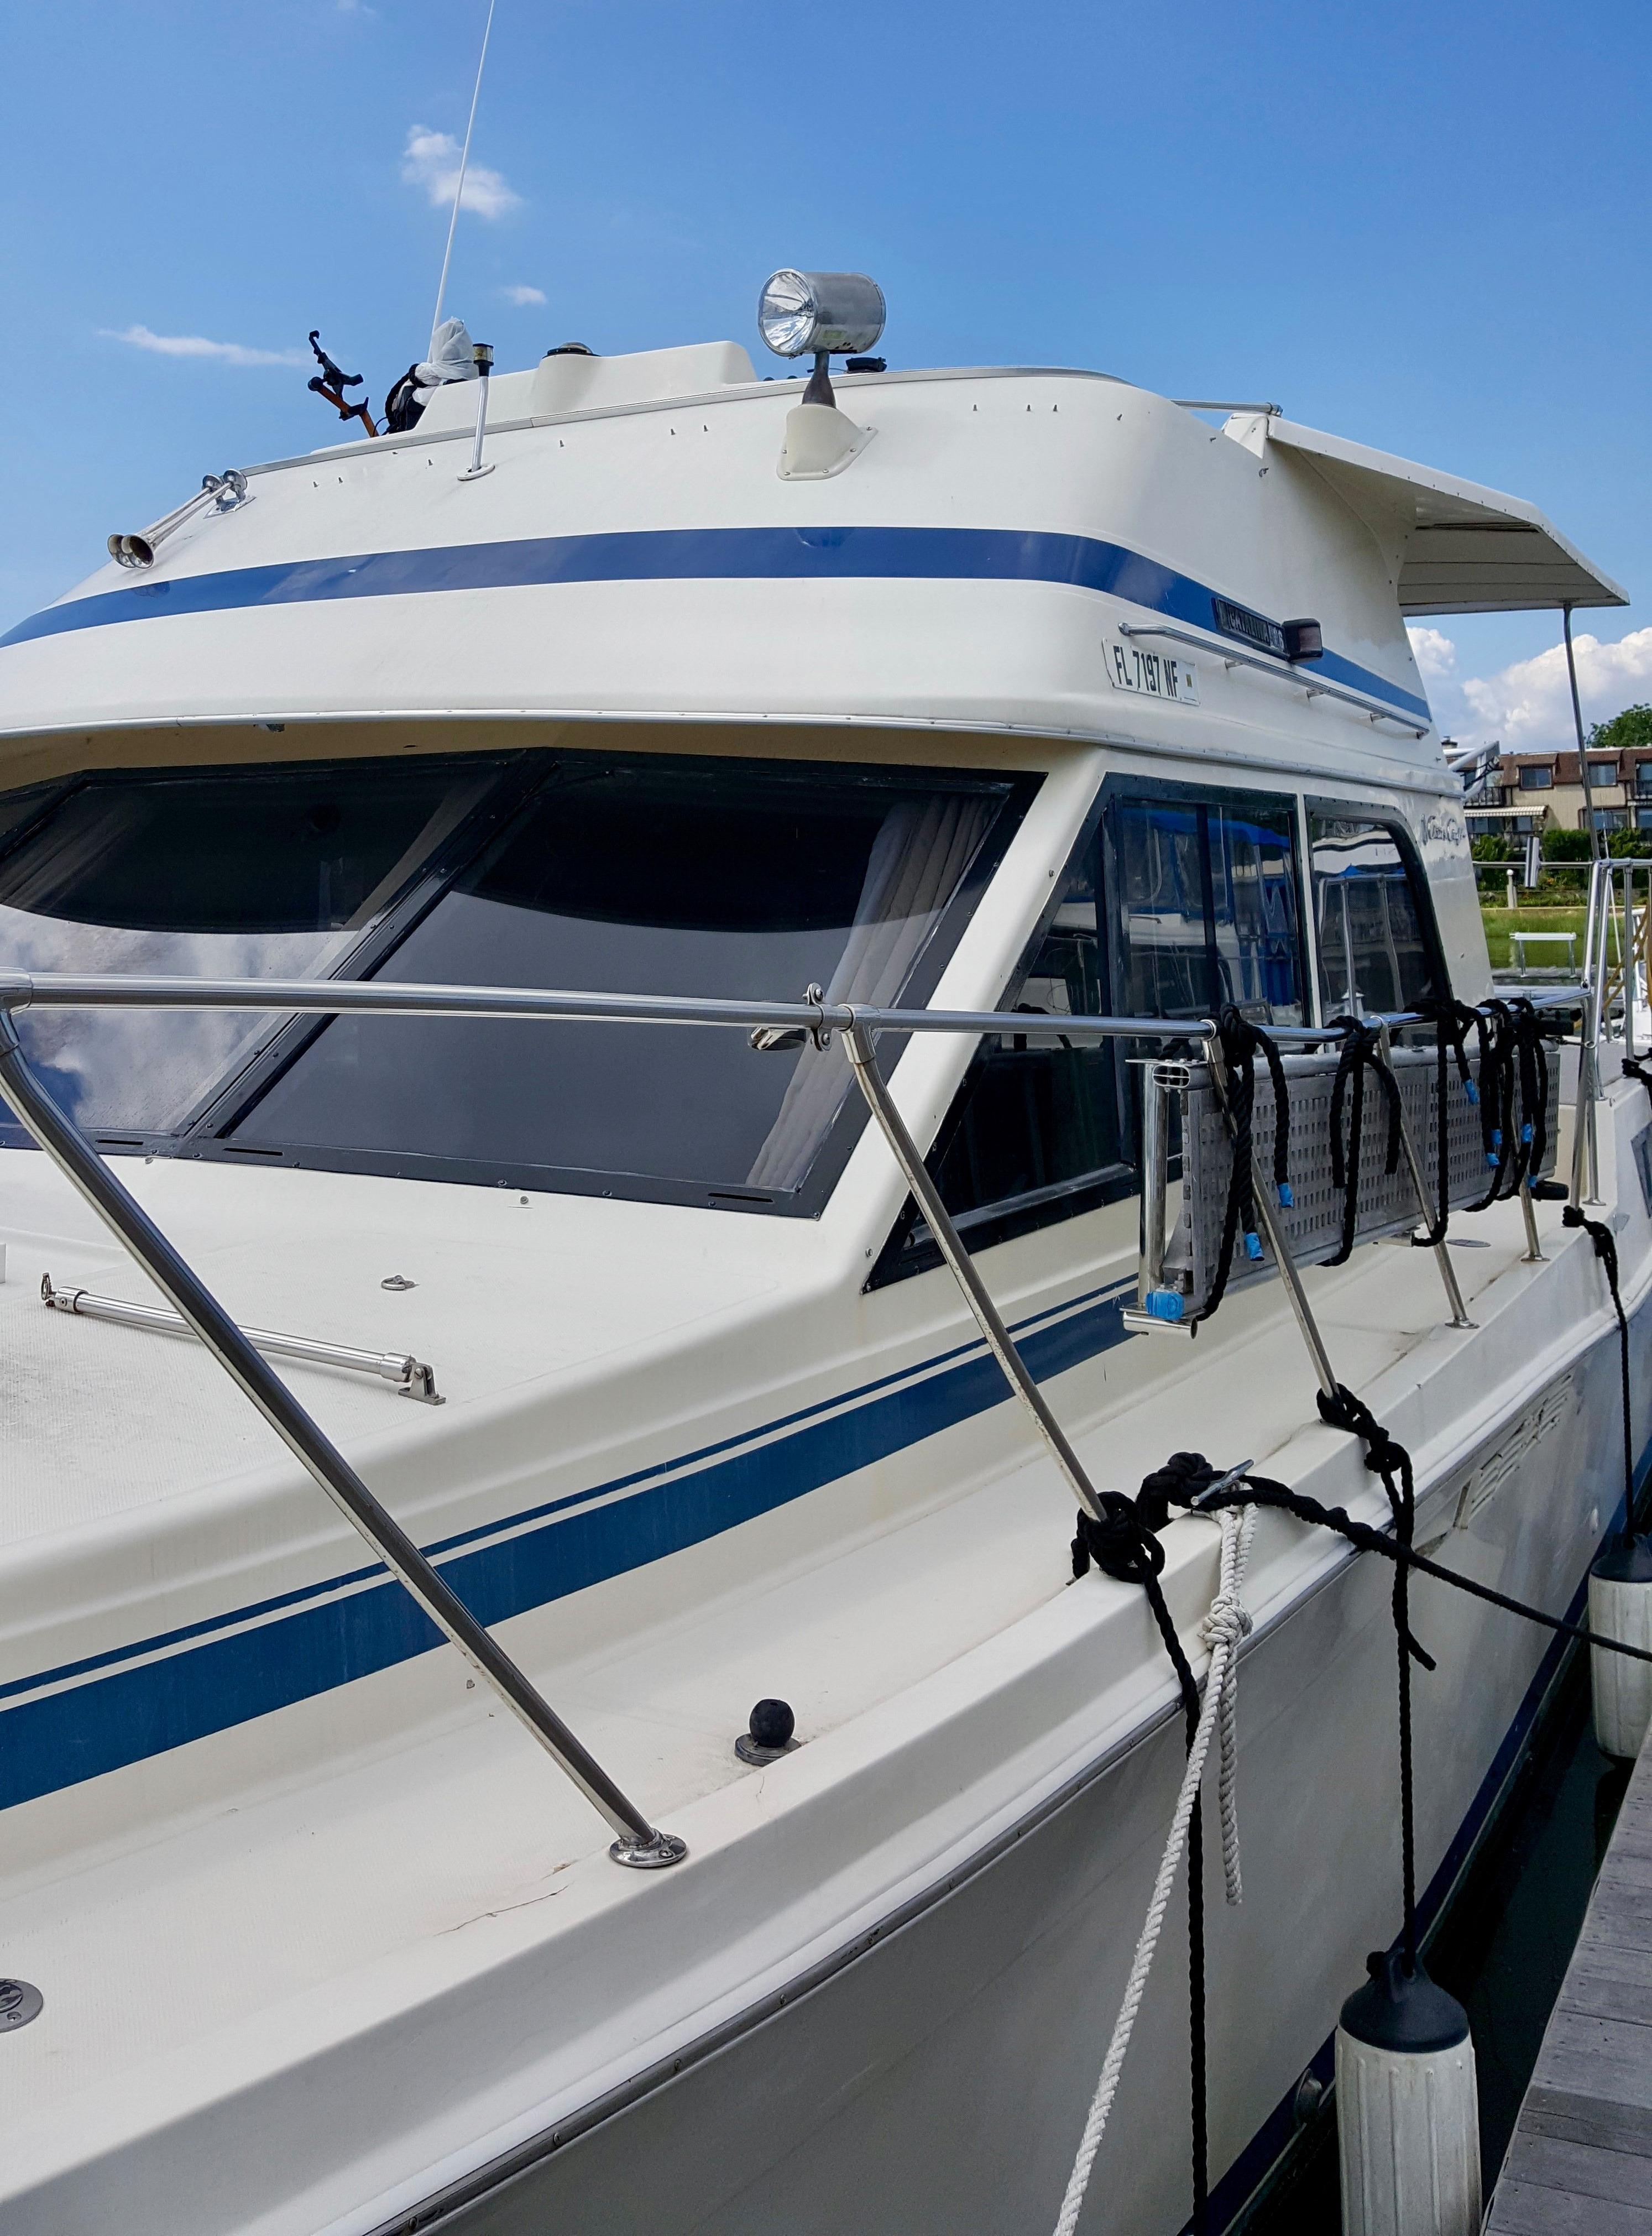 42 Chris Craft Catalina Acmy Yacht For Sale Rubicon Yachts Model A Engine Diagram Details Dimensions Engines Tanks Accommodations